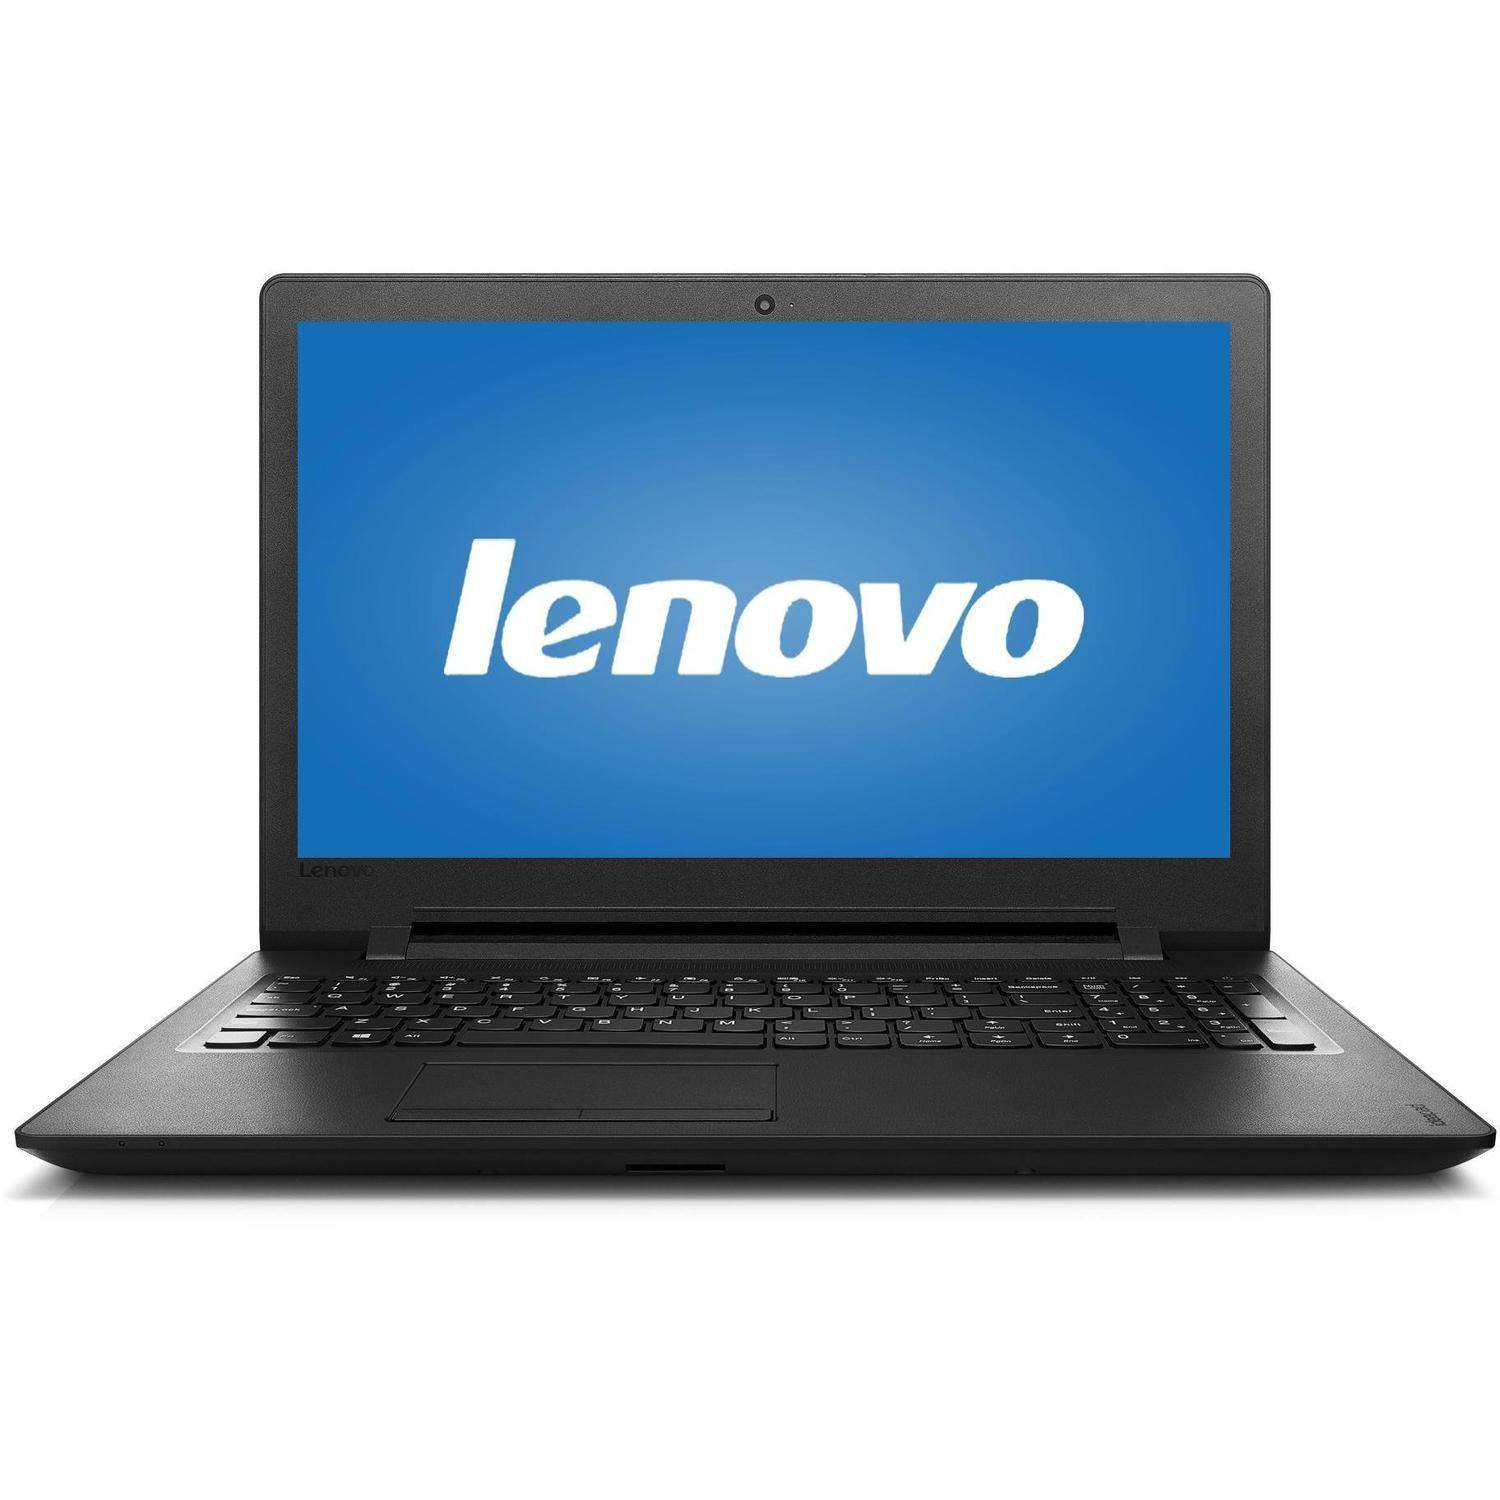 "Lenovo ideapad 110-151BR 15.6"" Laptop, Windows 10 Home, Intel Pentium N3710 Processor, 4GB RAM, 1TB Hard Drive"